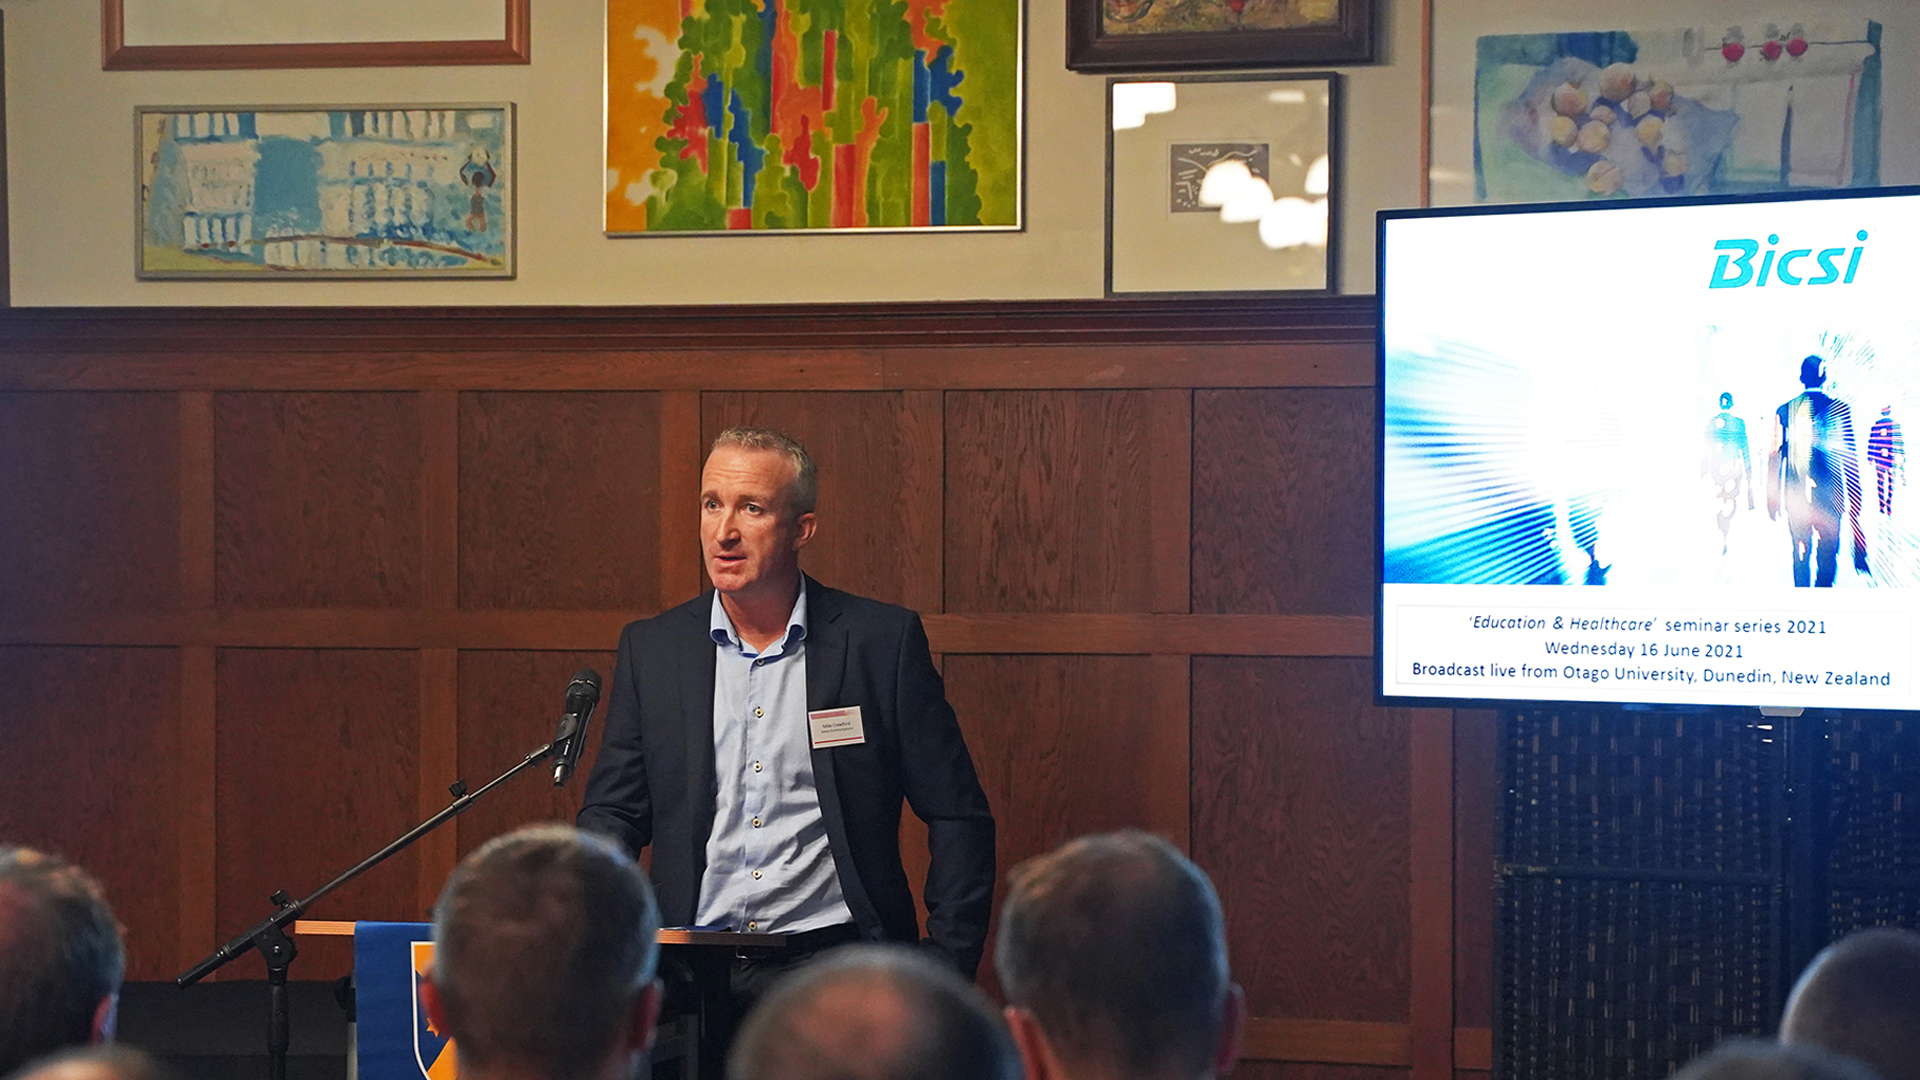 The 2021 BICSI Seminar Series Proudly Supported By Aotea Communications